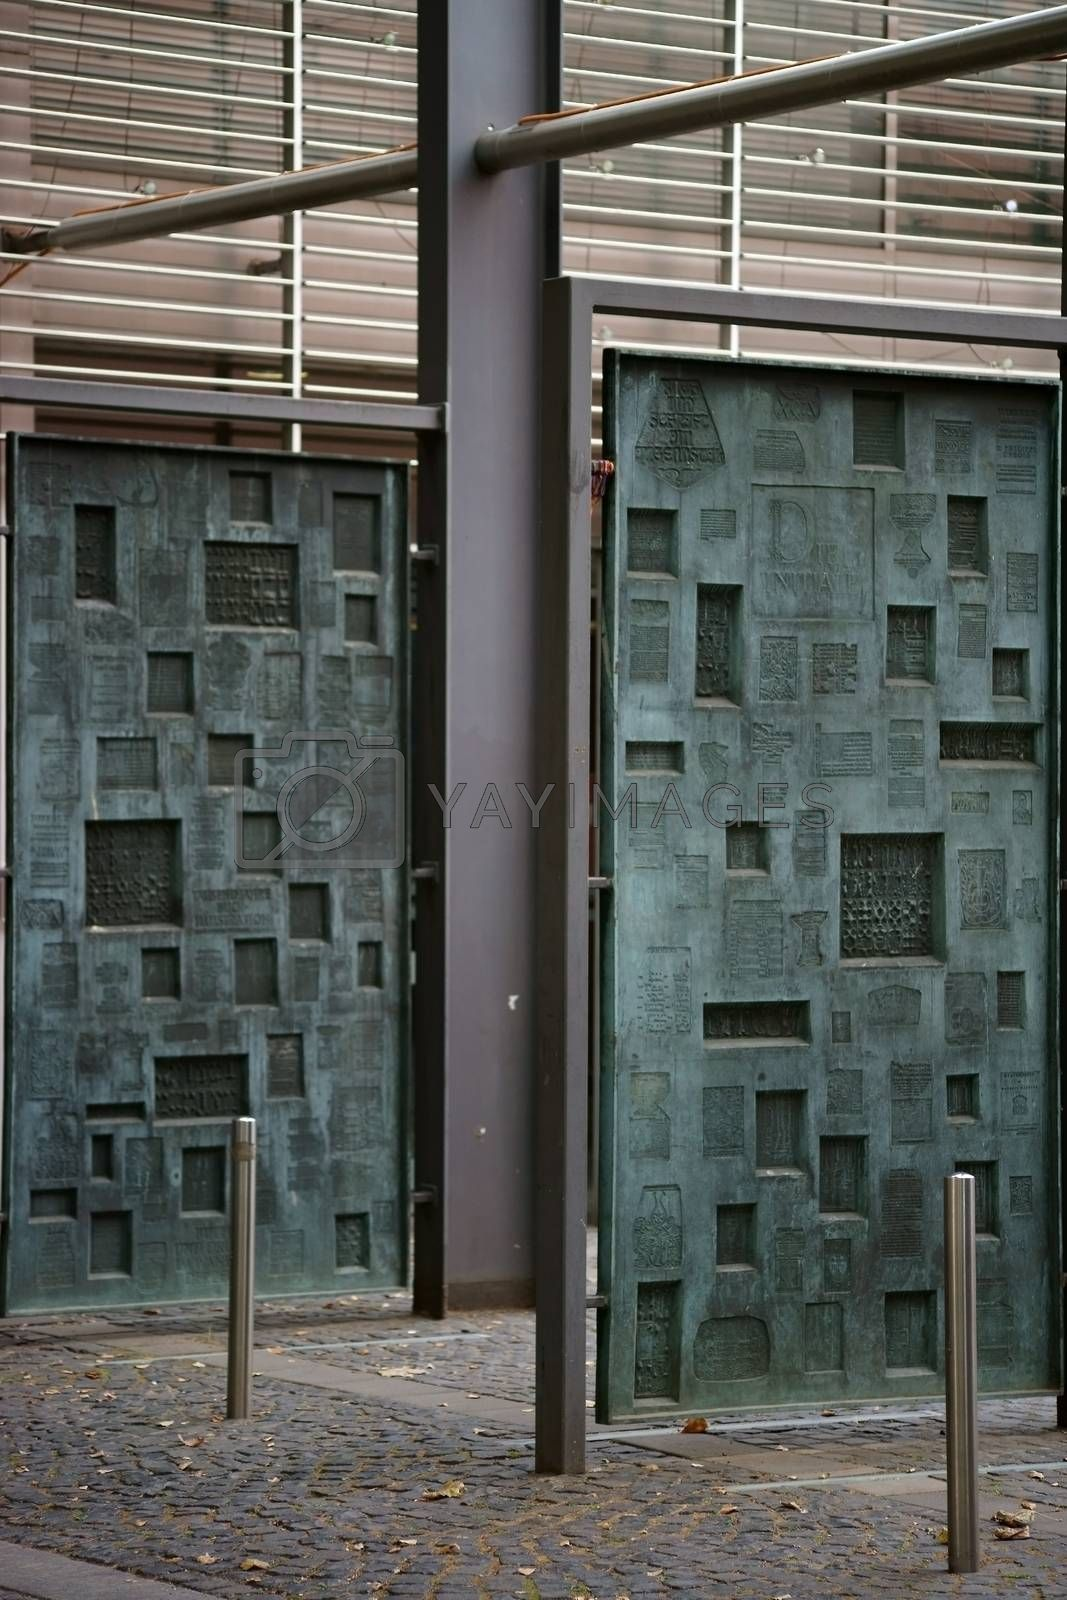 Mainz, Germany - September 04, 2015: Hanging printing plates made of copper with different motives and characters in the courtyard of the Gutenberg Museum on September 04, 2015 in Mainz.